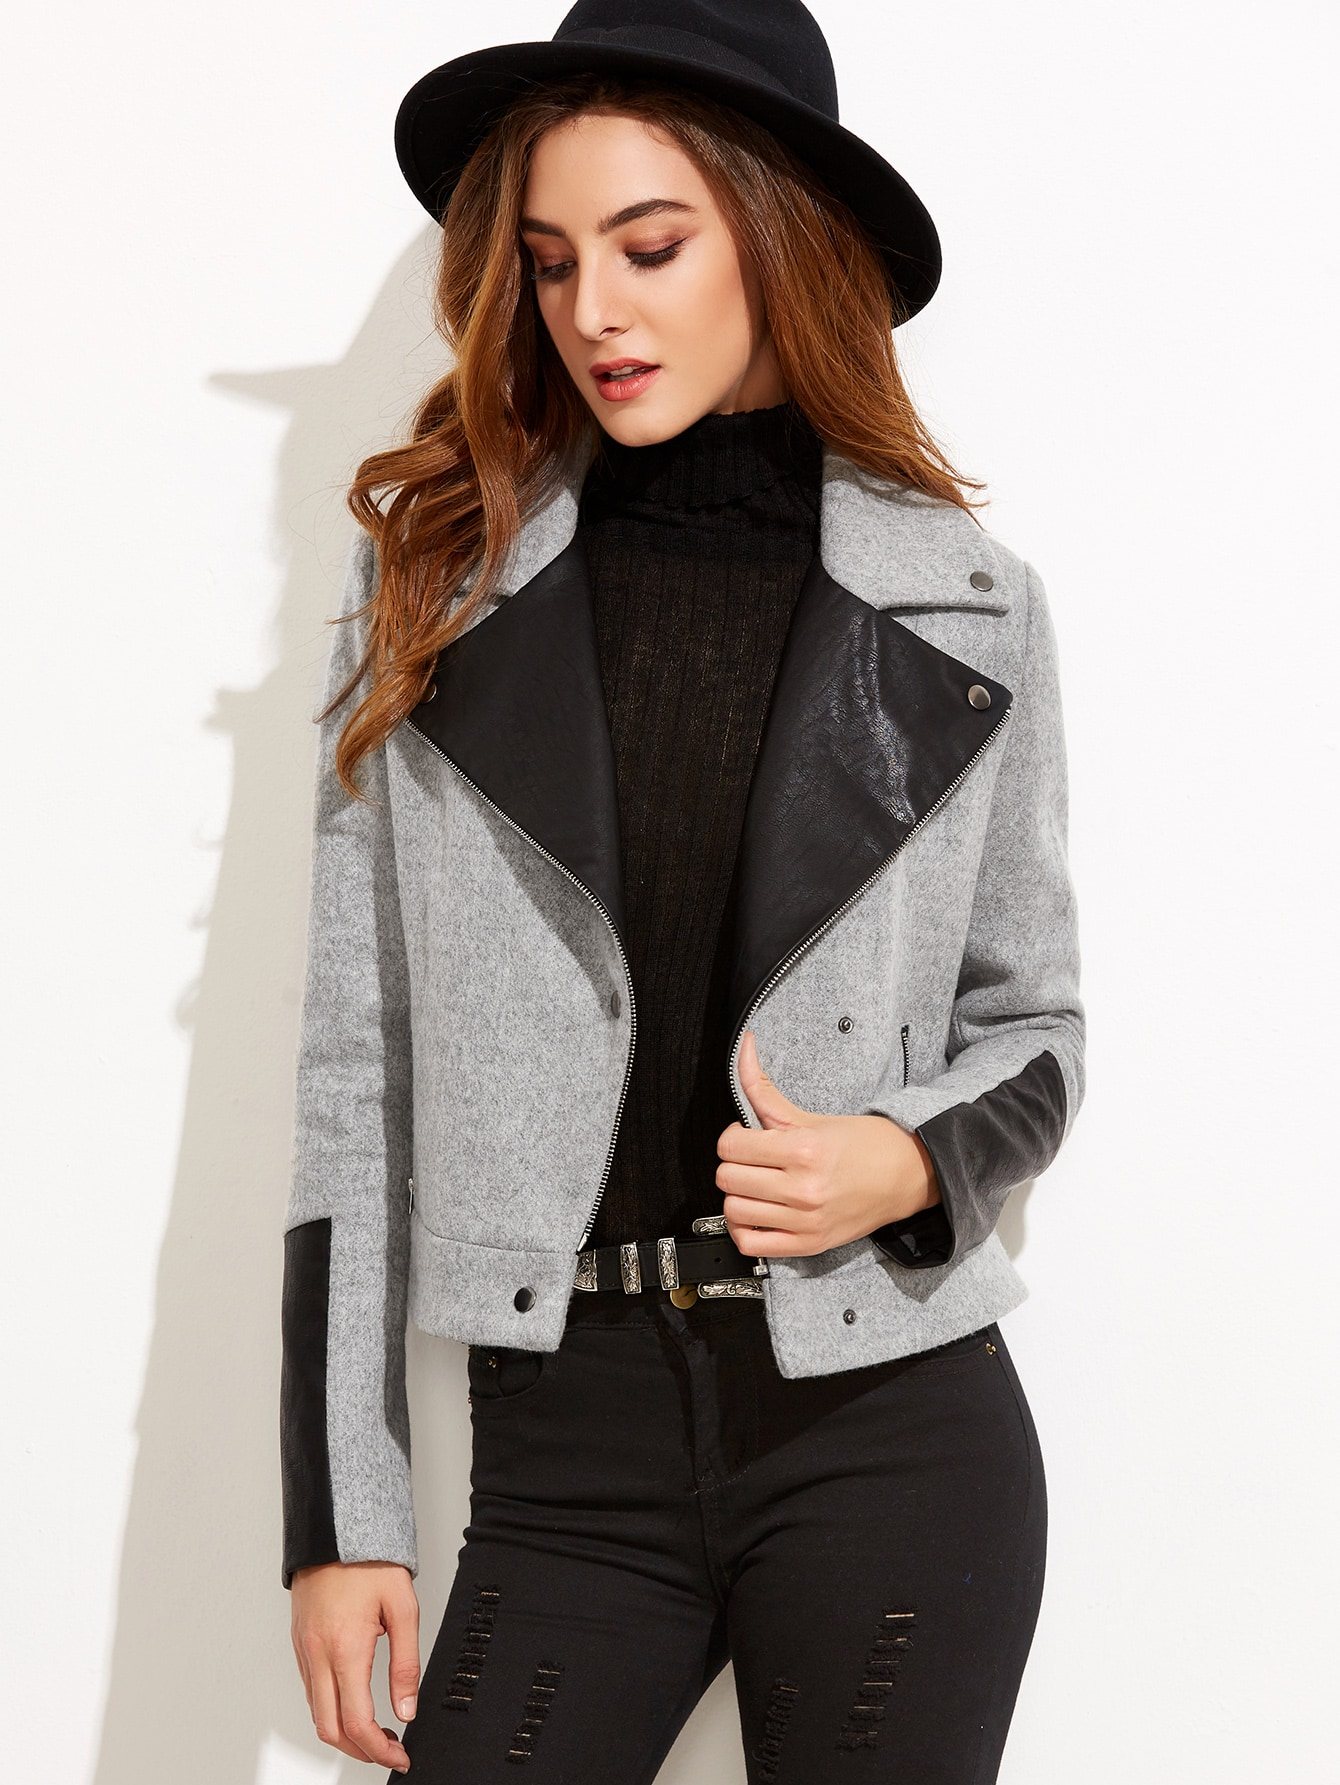 Heather Grey Contrast Faux Leather Combo Jacket